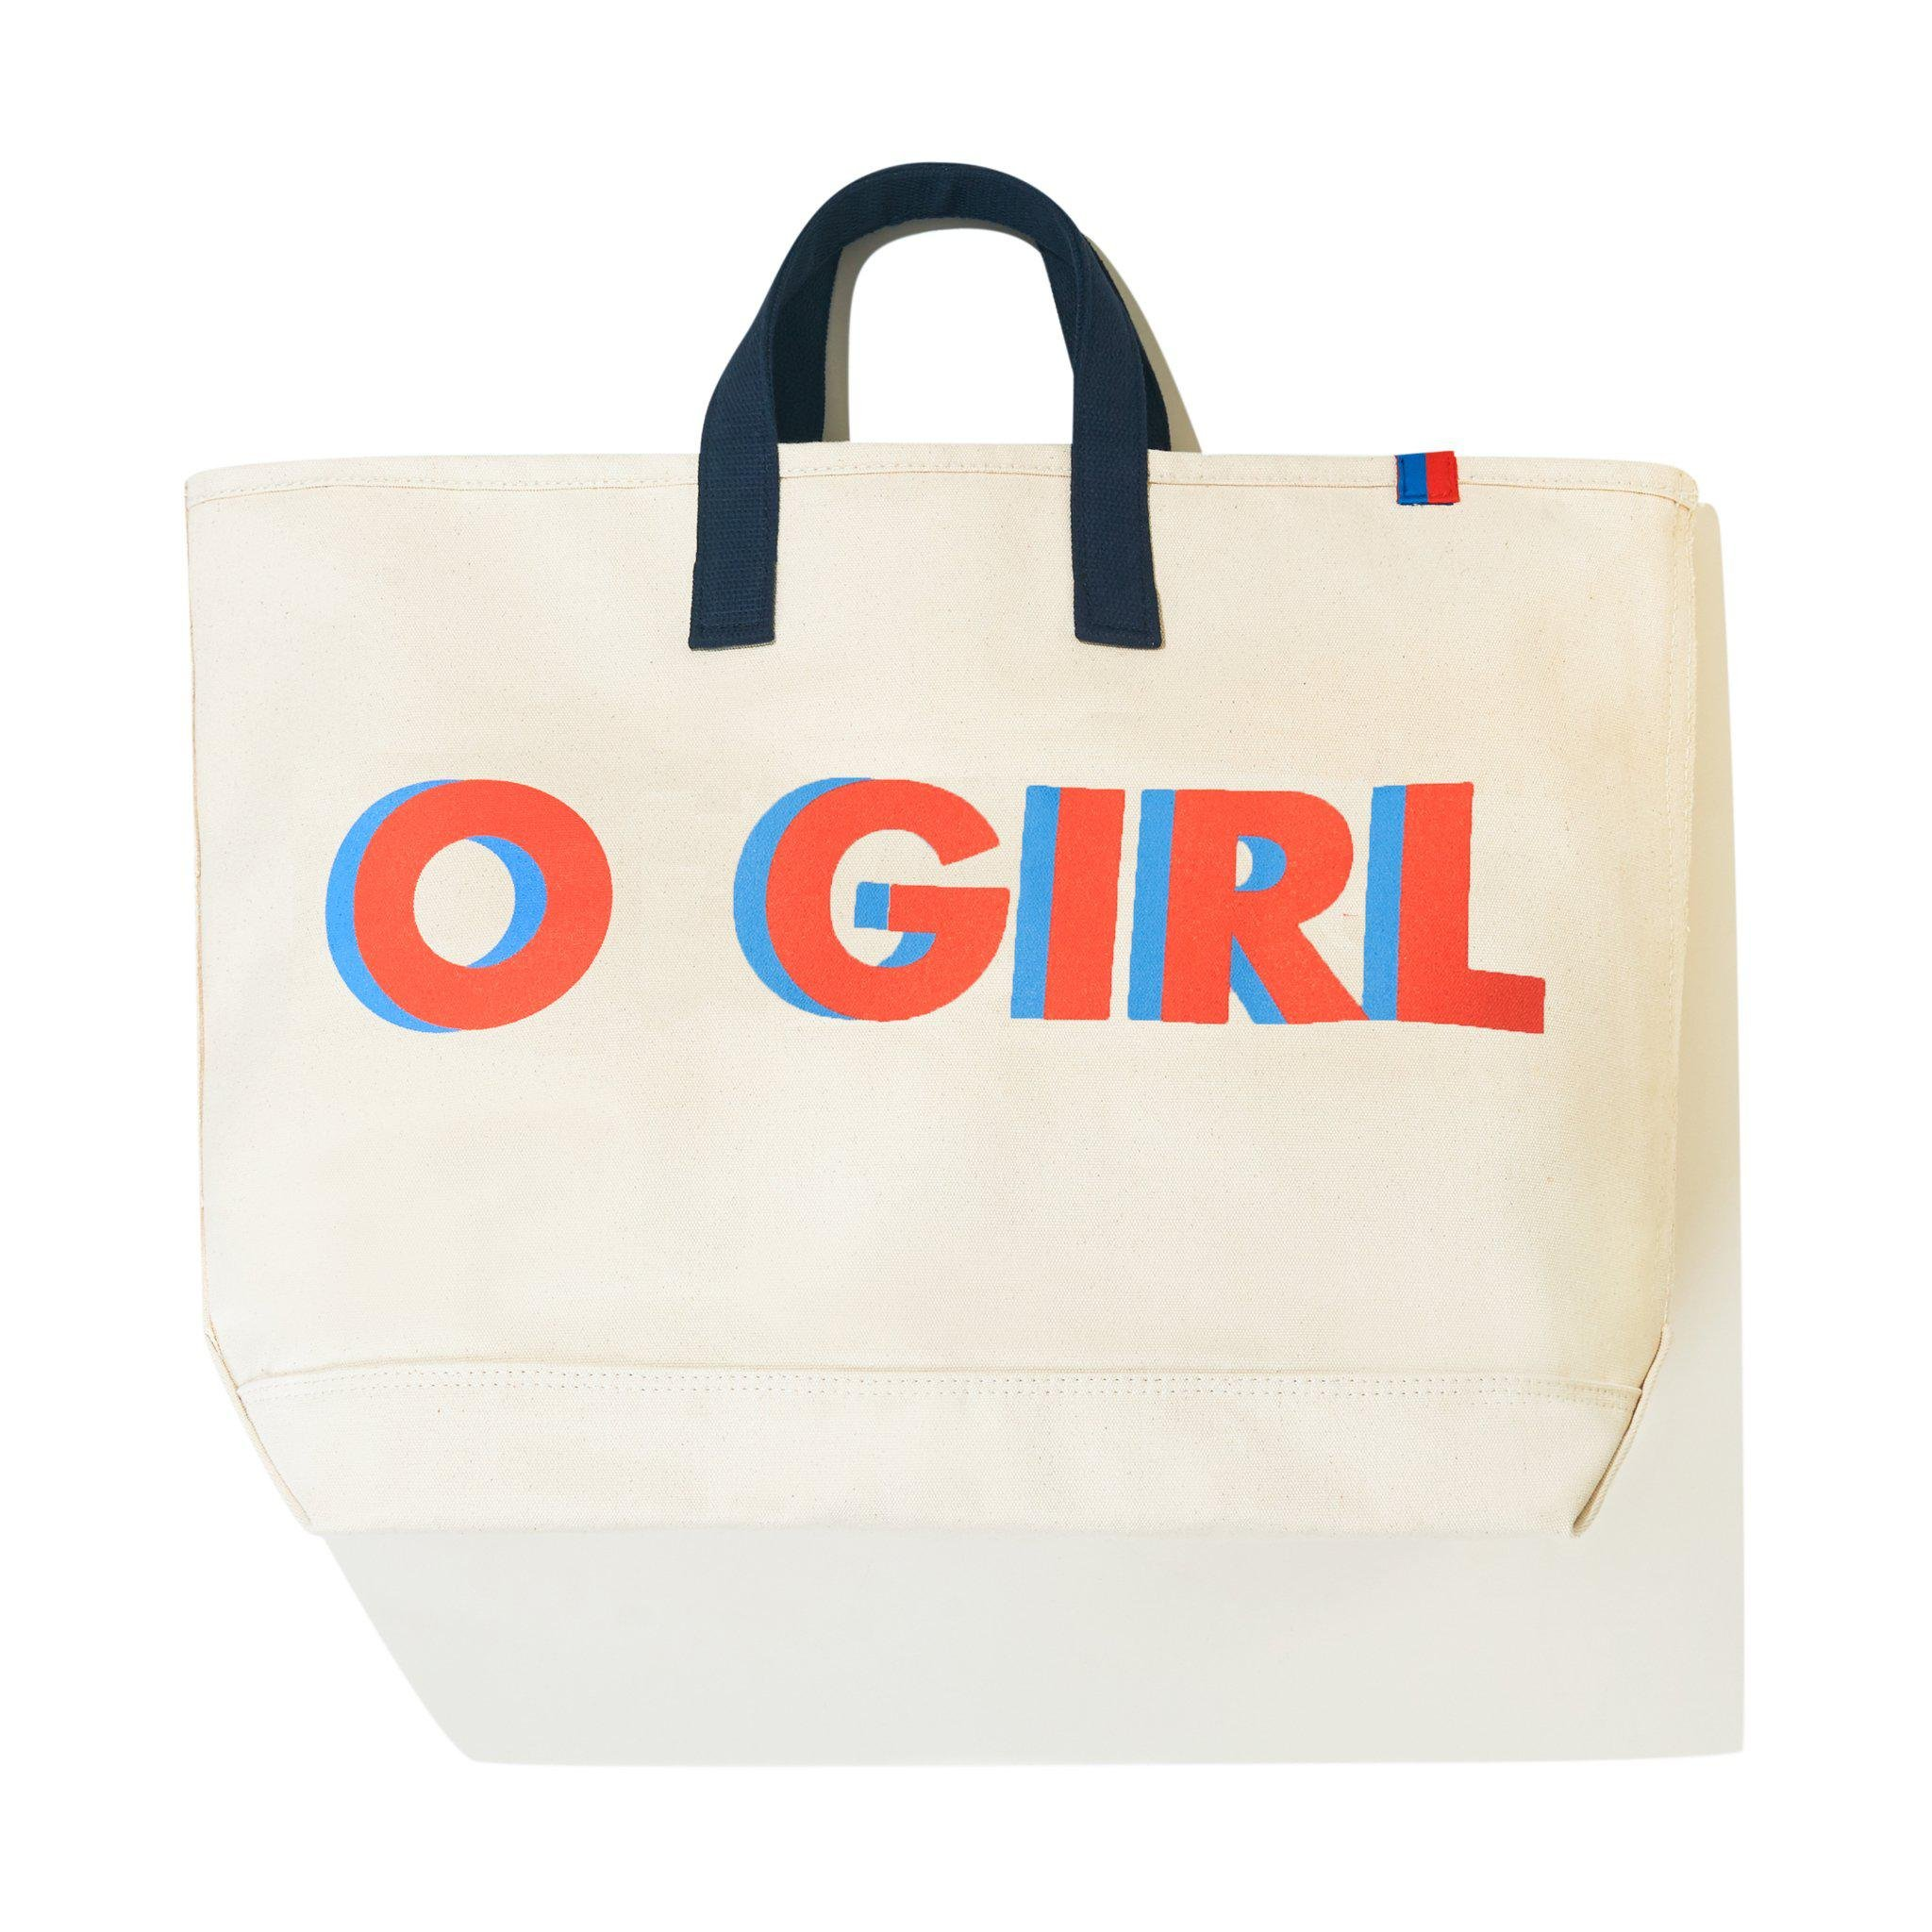 The O GIRL Tote - Canvas